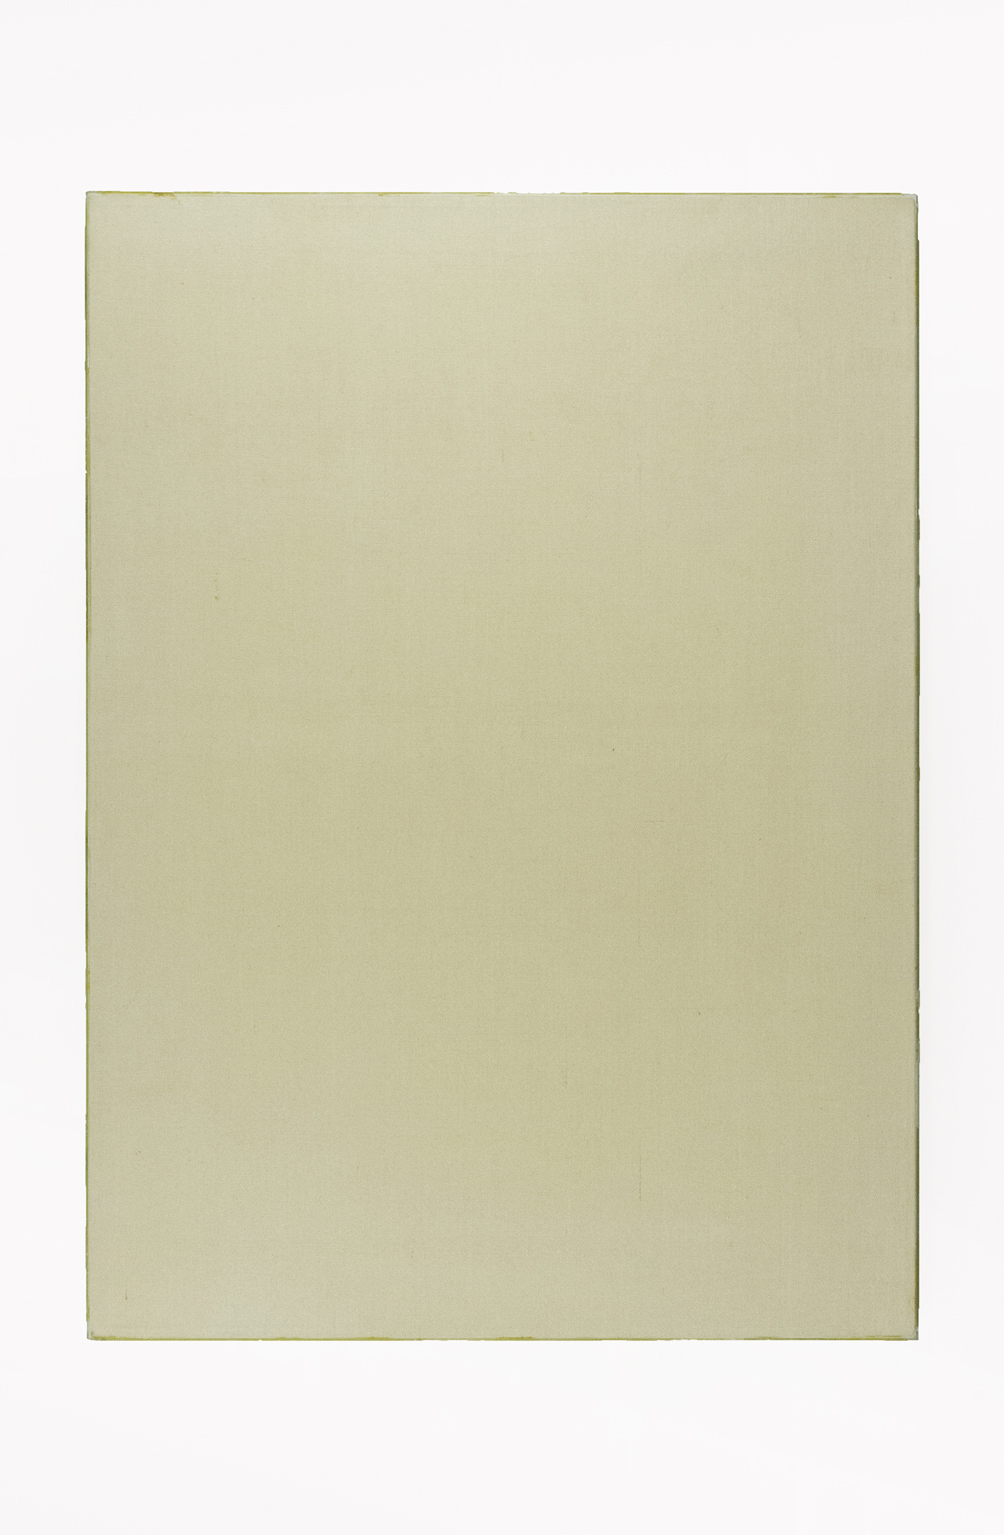 "Portrait of L's Worth; Sized linen with resin fixed glass edges; 36 x 26""; Item #089"